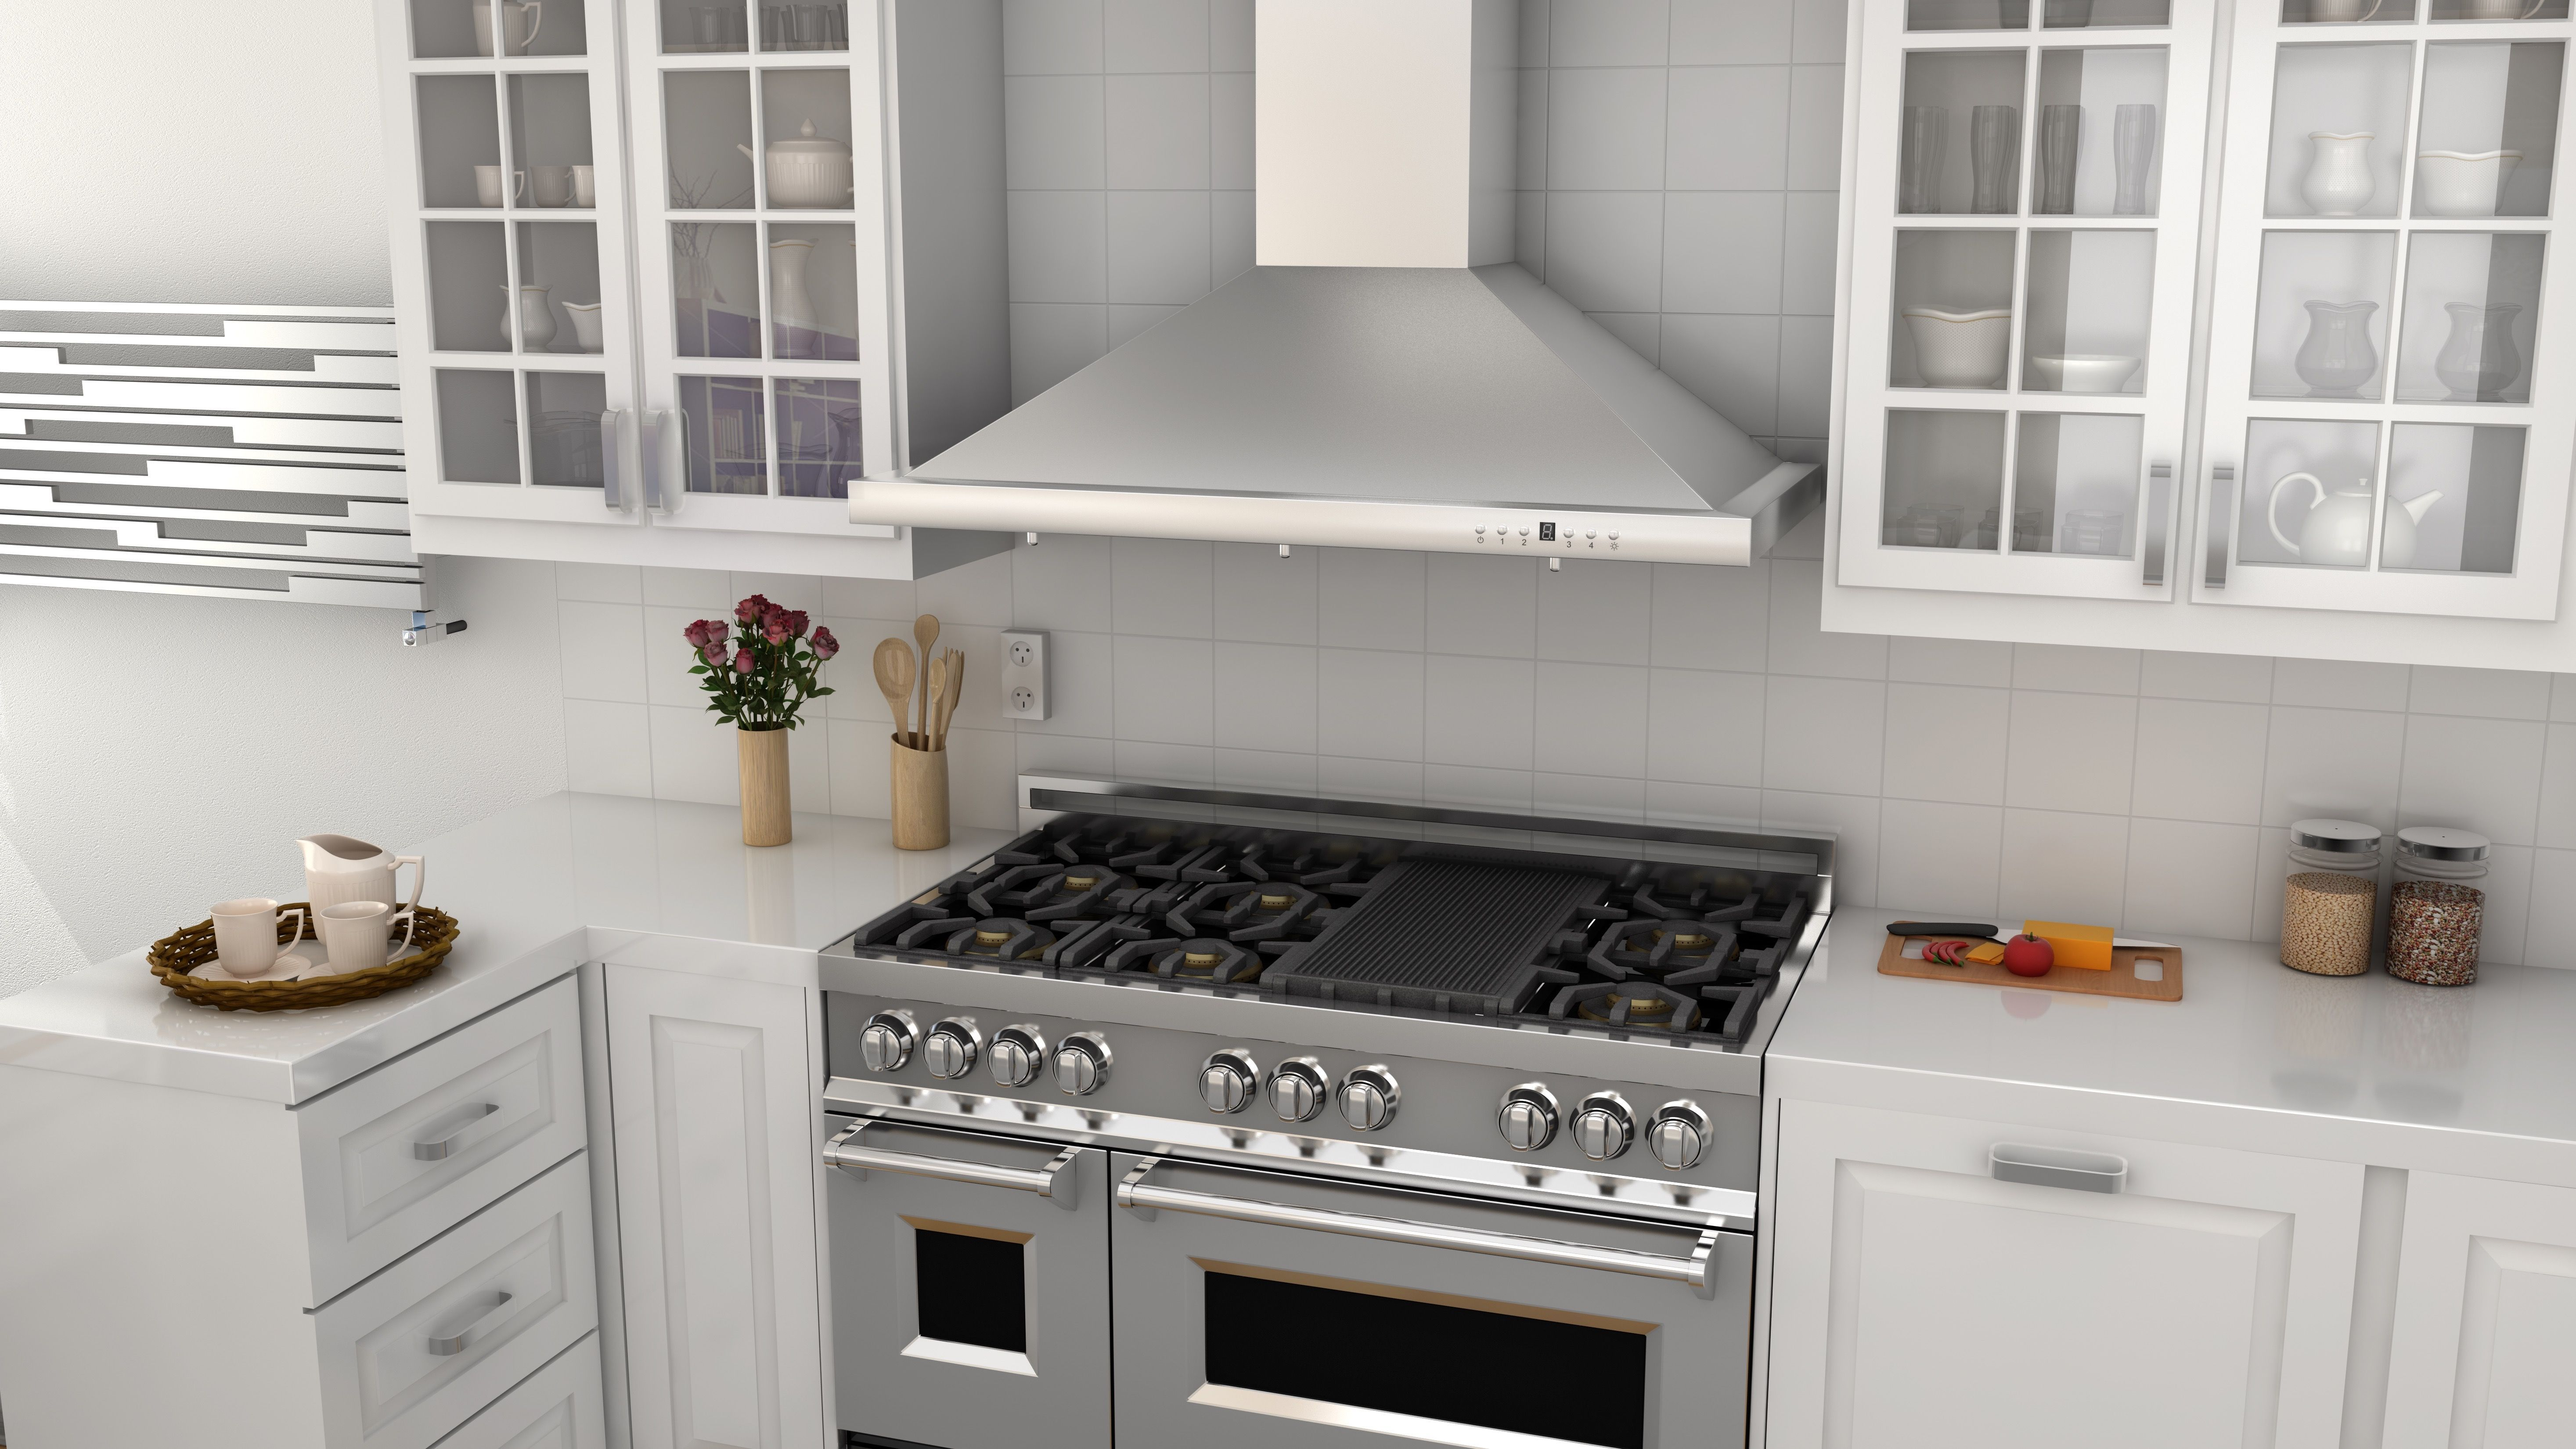 A Beautiful Zline Kitchen Stainless Steel Range Hood And White Kitchen Cabinets For Your Monday Kitcheninspira Range Hood Kitchen Installation Kitchen Remodel